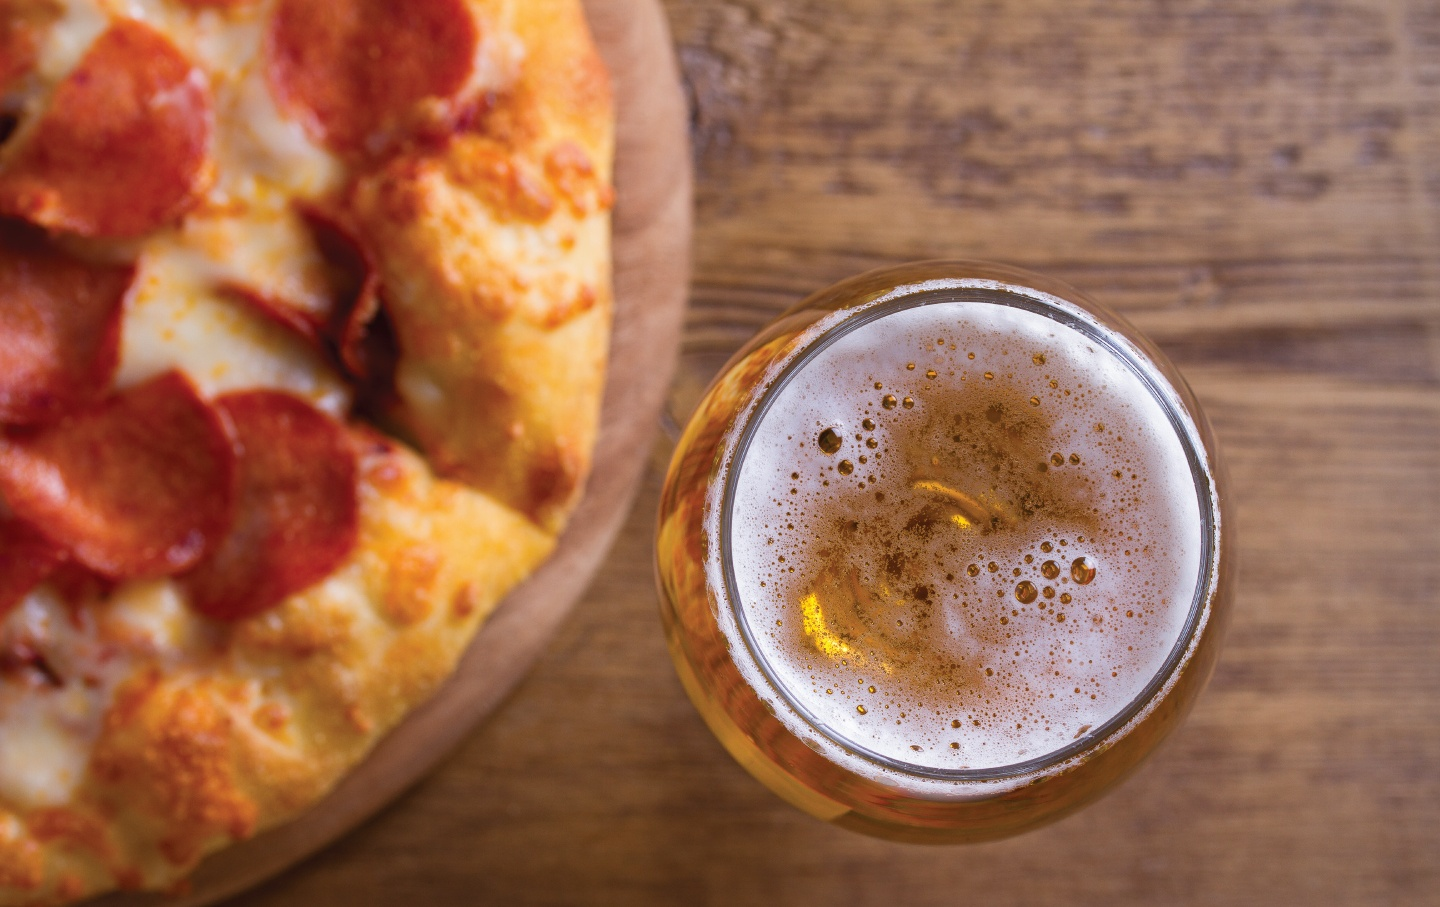 Pizza and a pint of beer